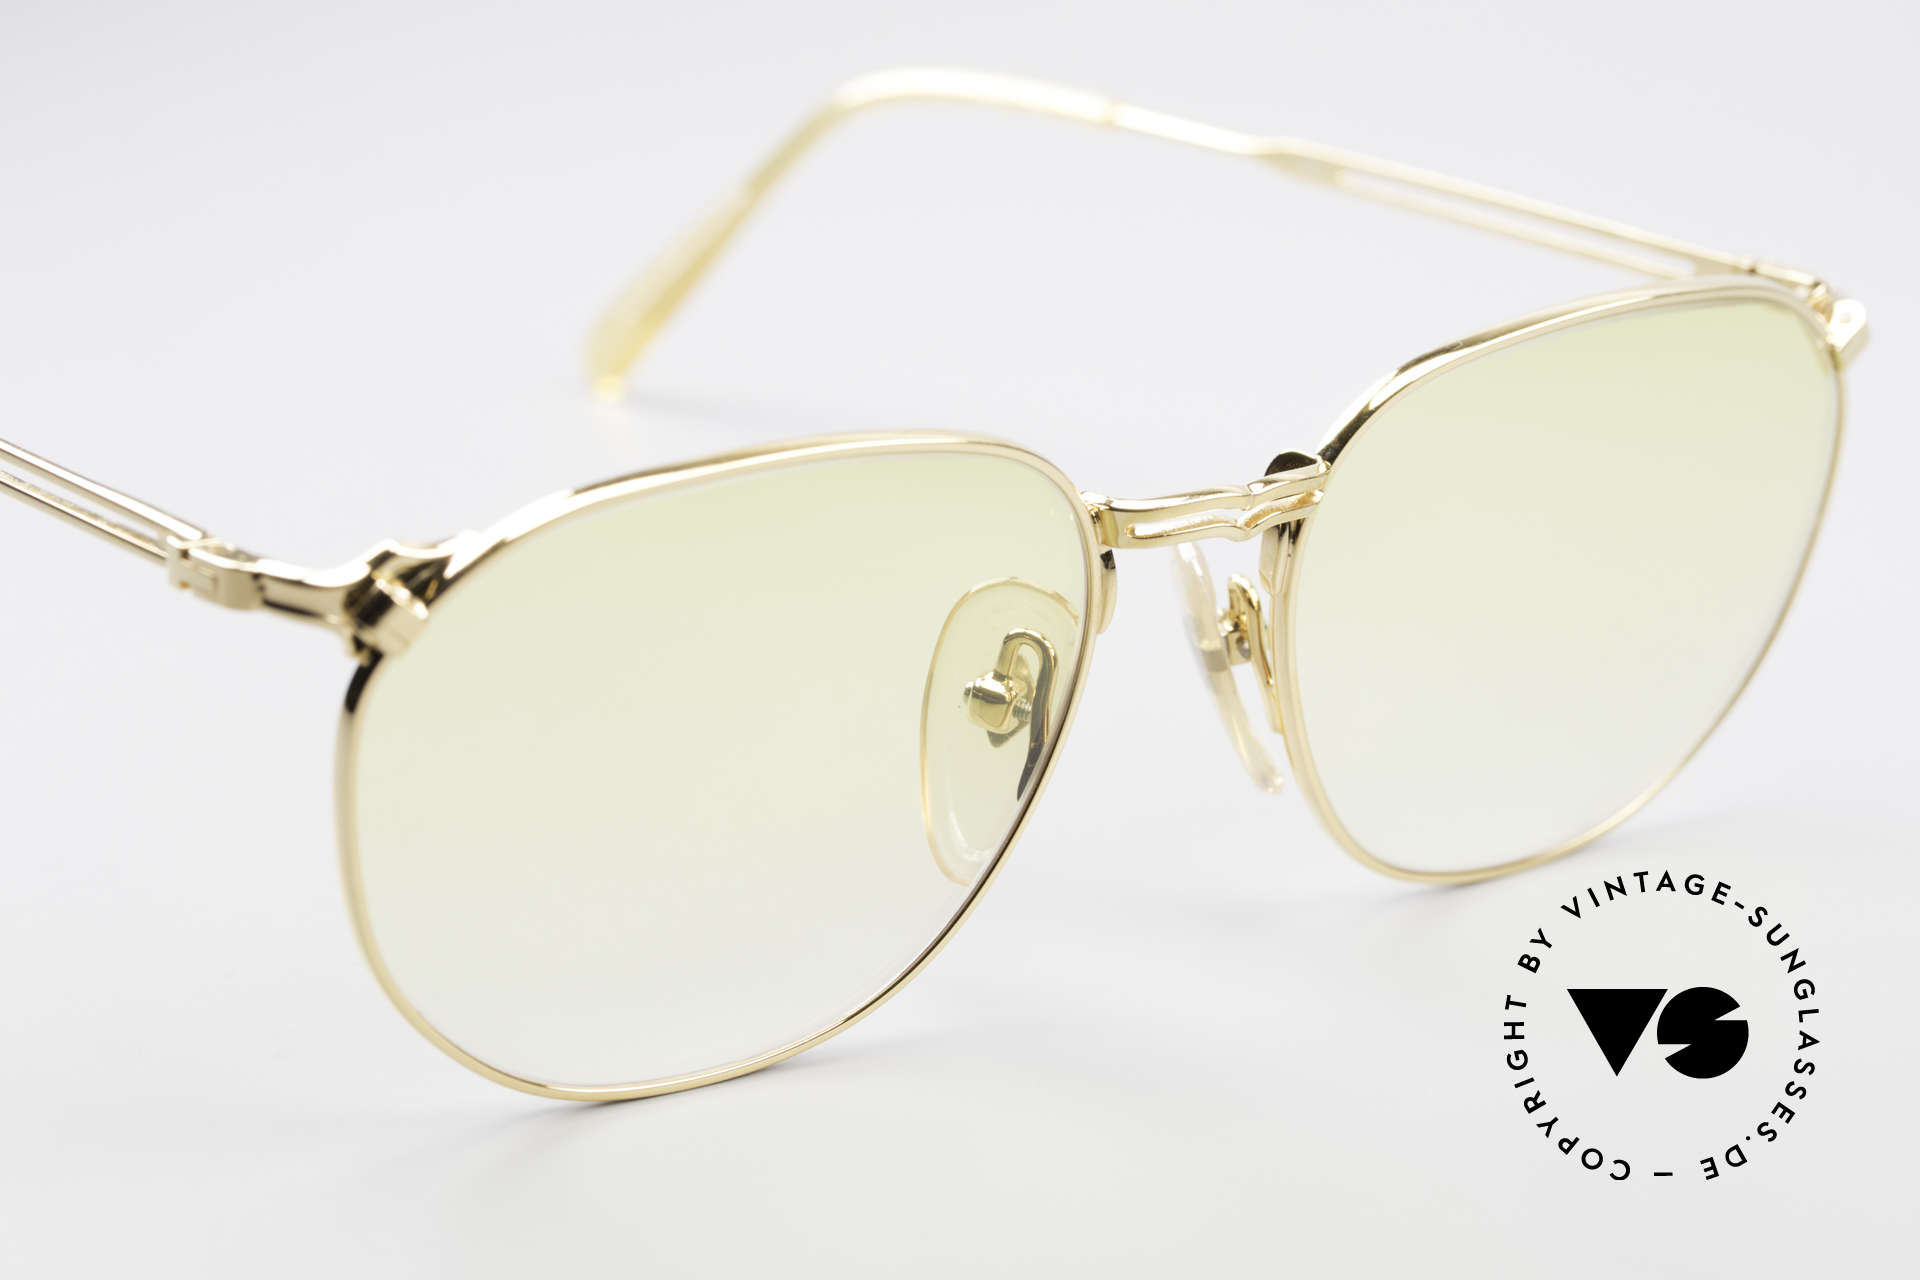 Jean Paul Gaultier 55-2173 Gold Plated Designer Frame, unworn (like all our rare vintage 90's designer glasses), Made for Men and Women